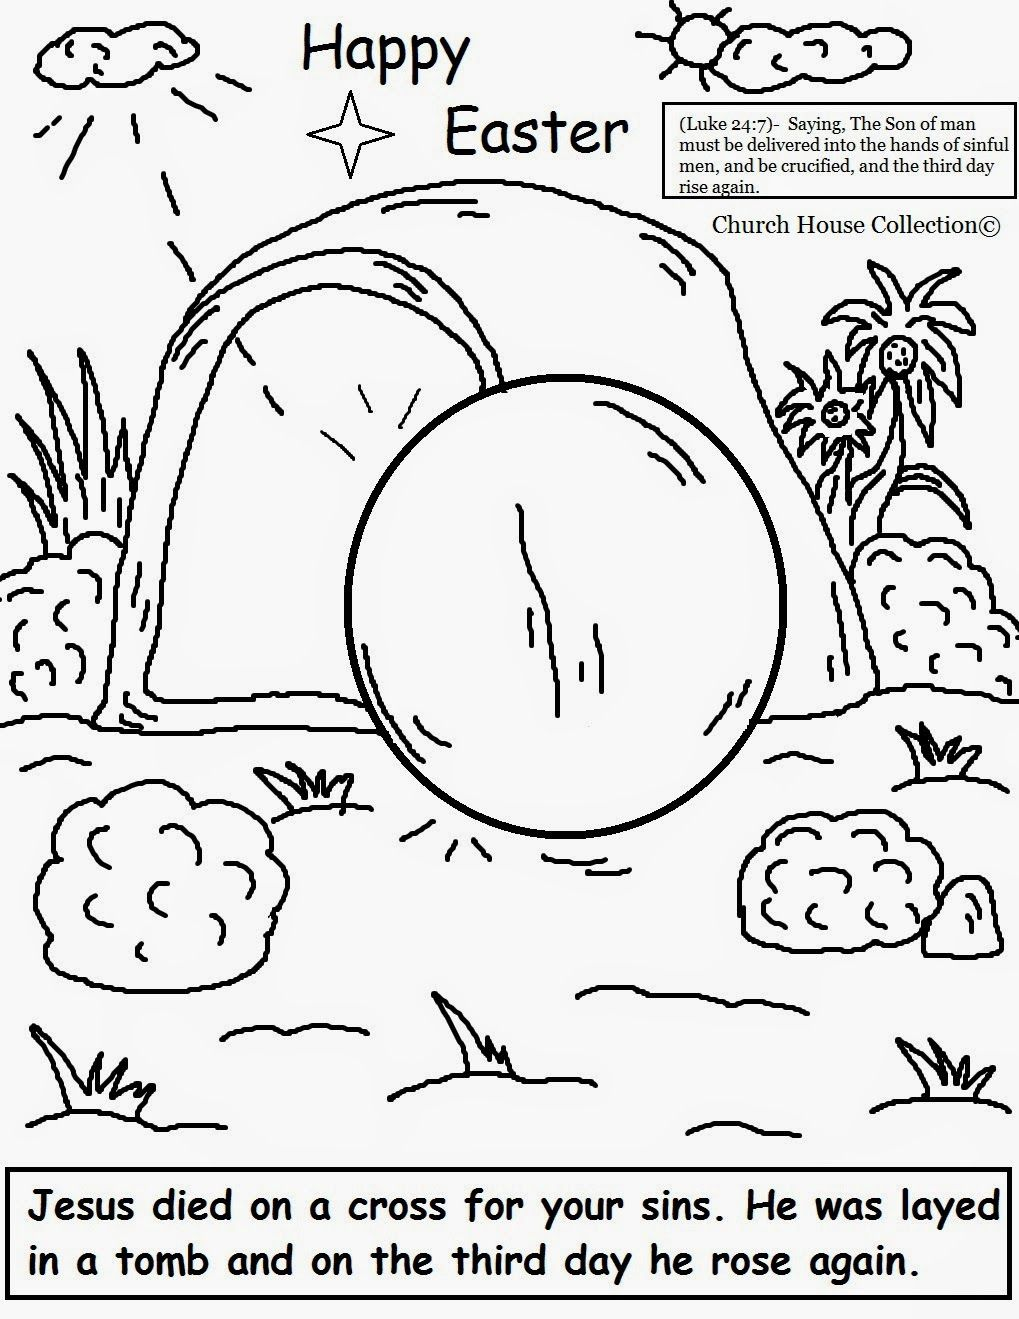 Easter Jesus Resurrection Coloring Pages Easter Coloring Pages Printable Easter Sunday School Sunday School Coloring Pages